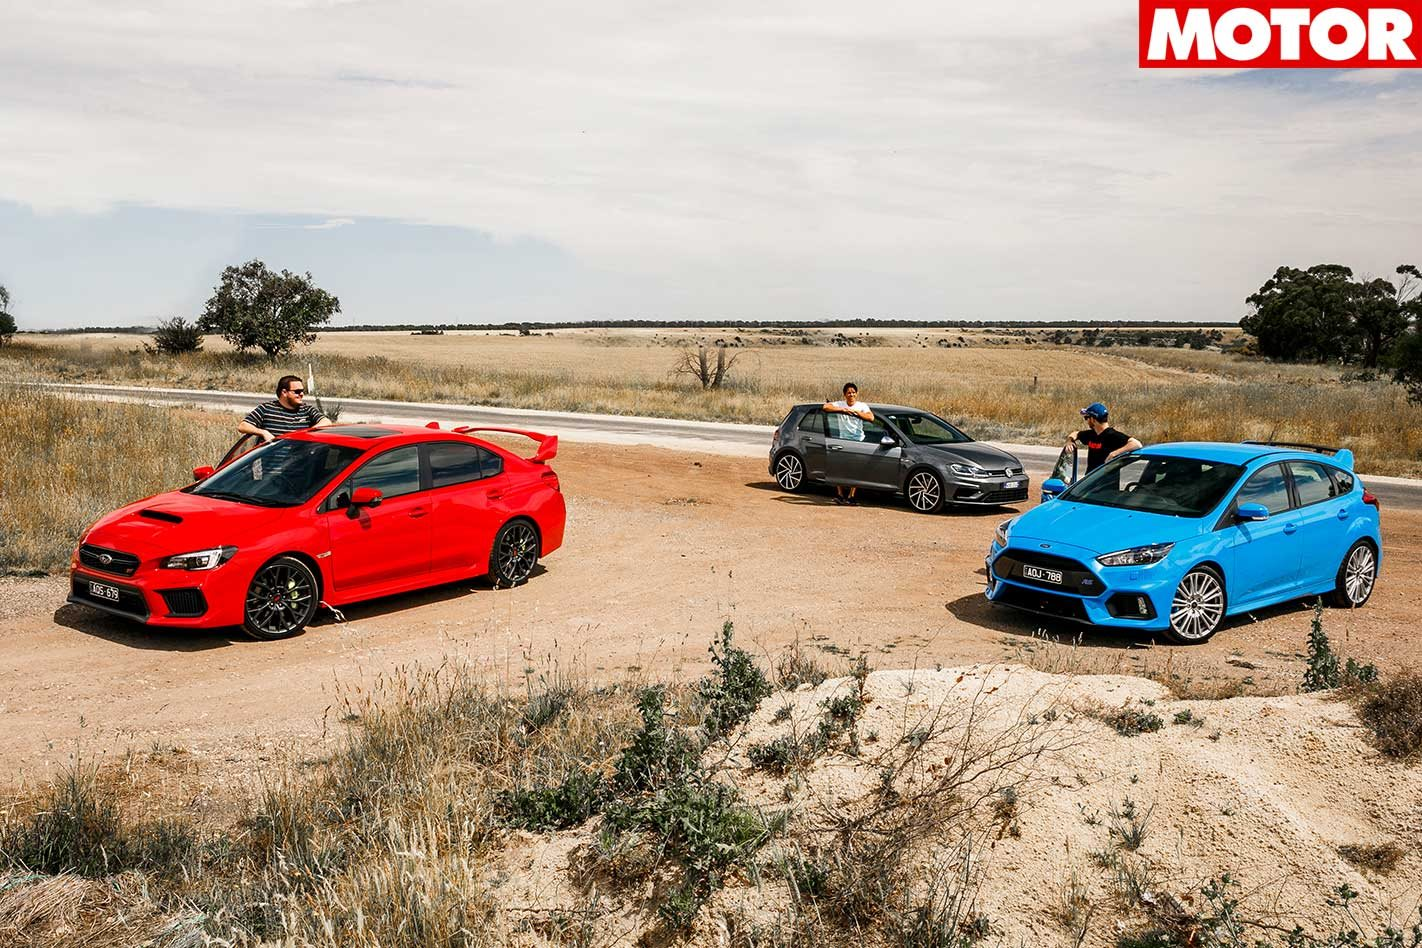 2018 Ford Focus Rs Vs Subaru Wrx Sti Vs Volkswagen Golf R Comparison Review